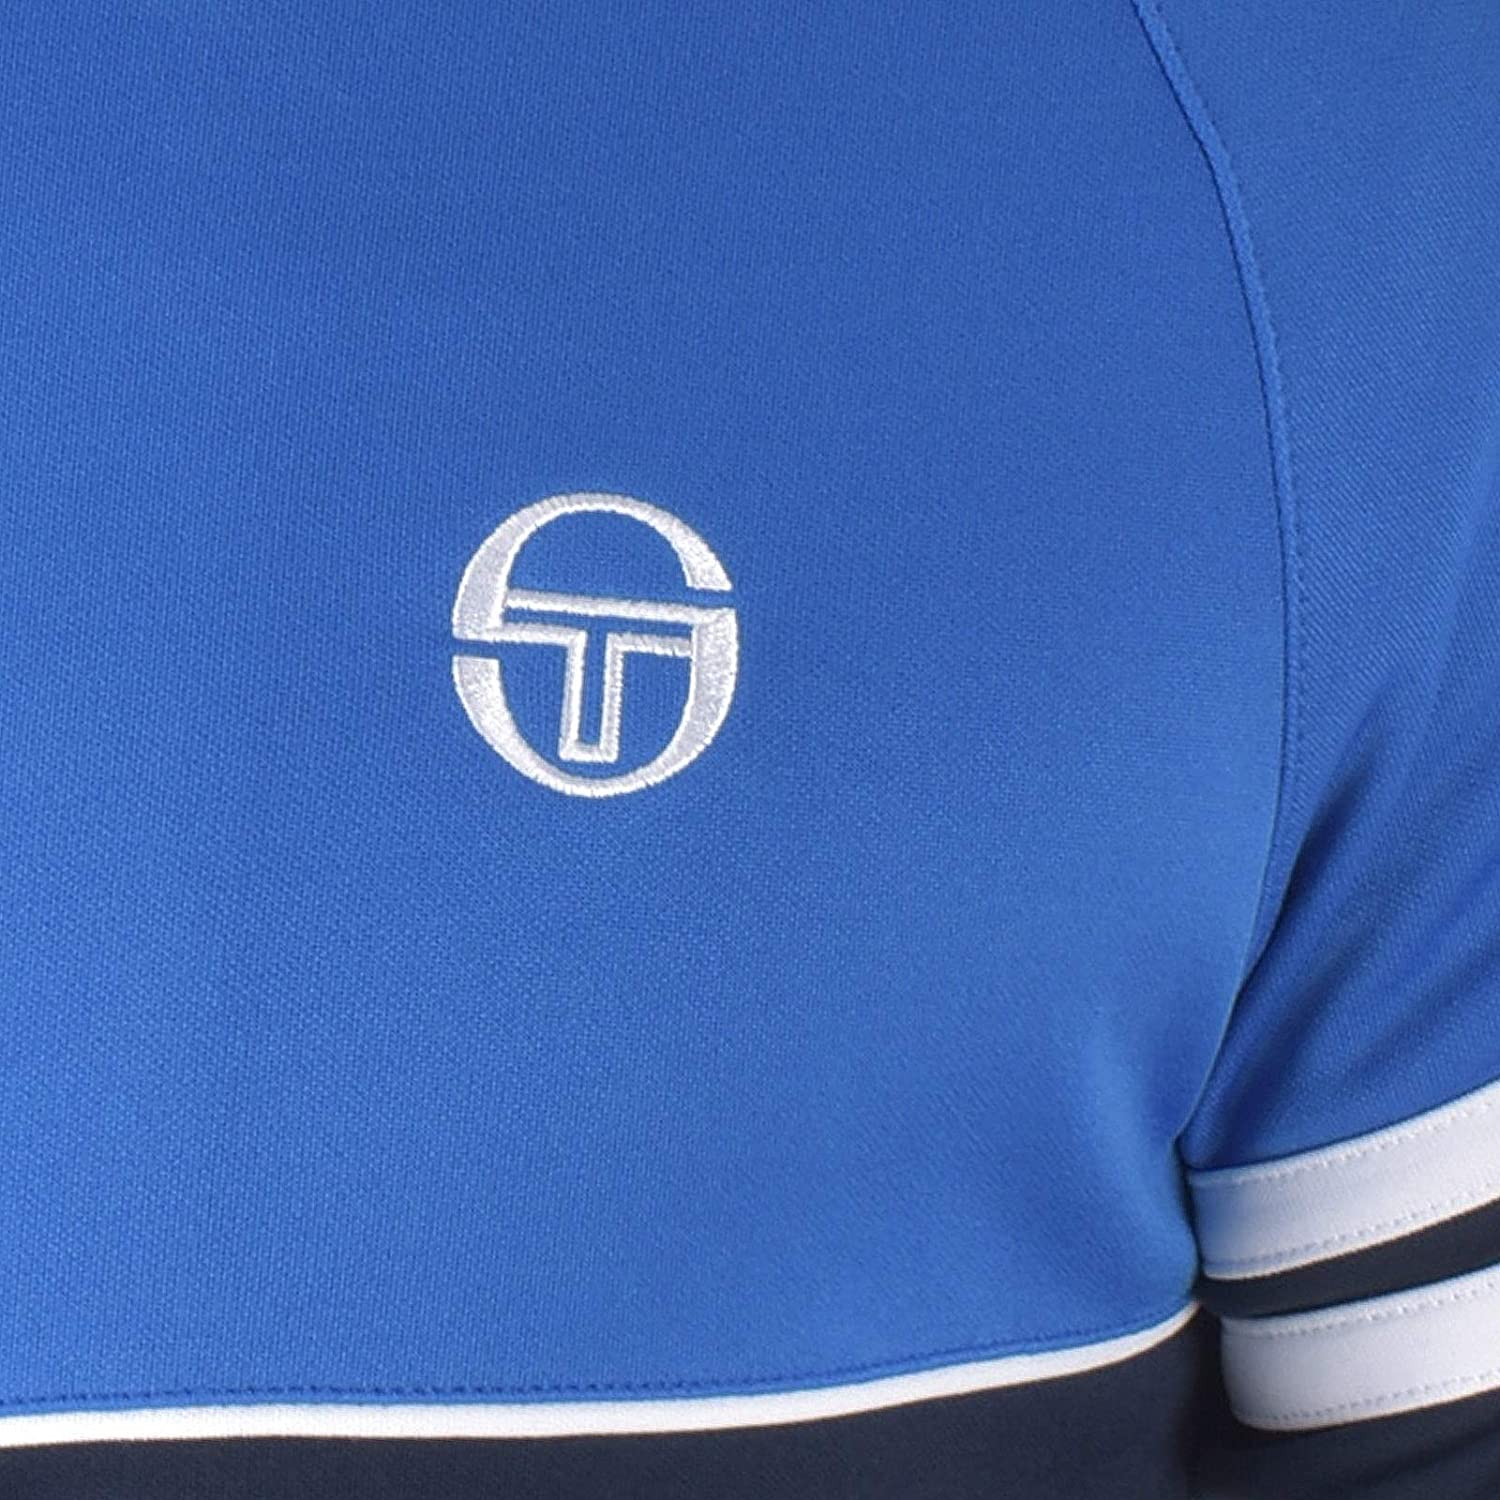 Sergio Tacchini Mens Orion Casual Track Jacket M Royal//Navy